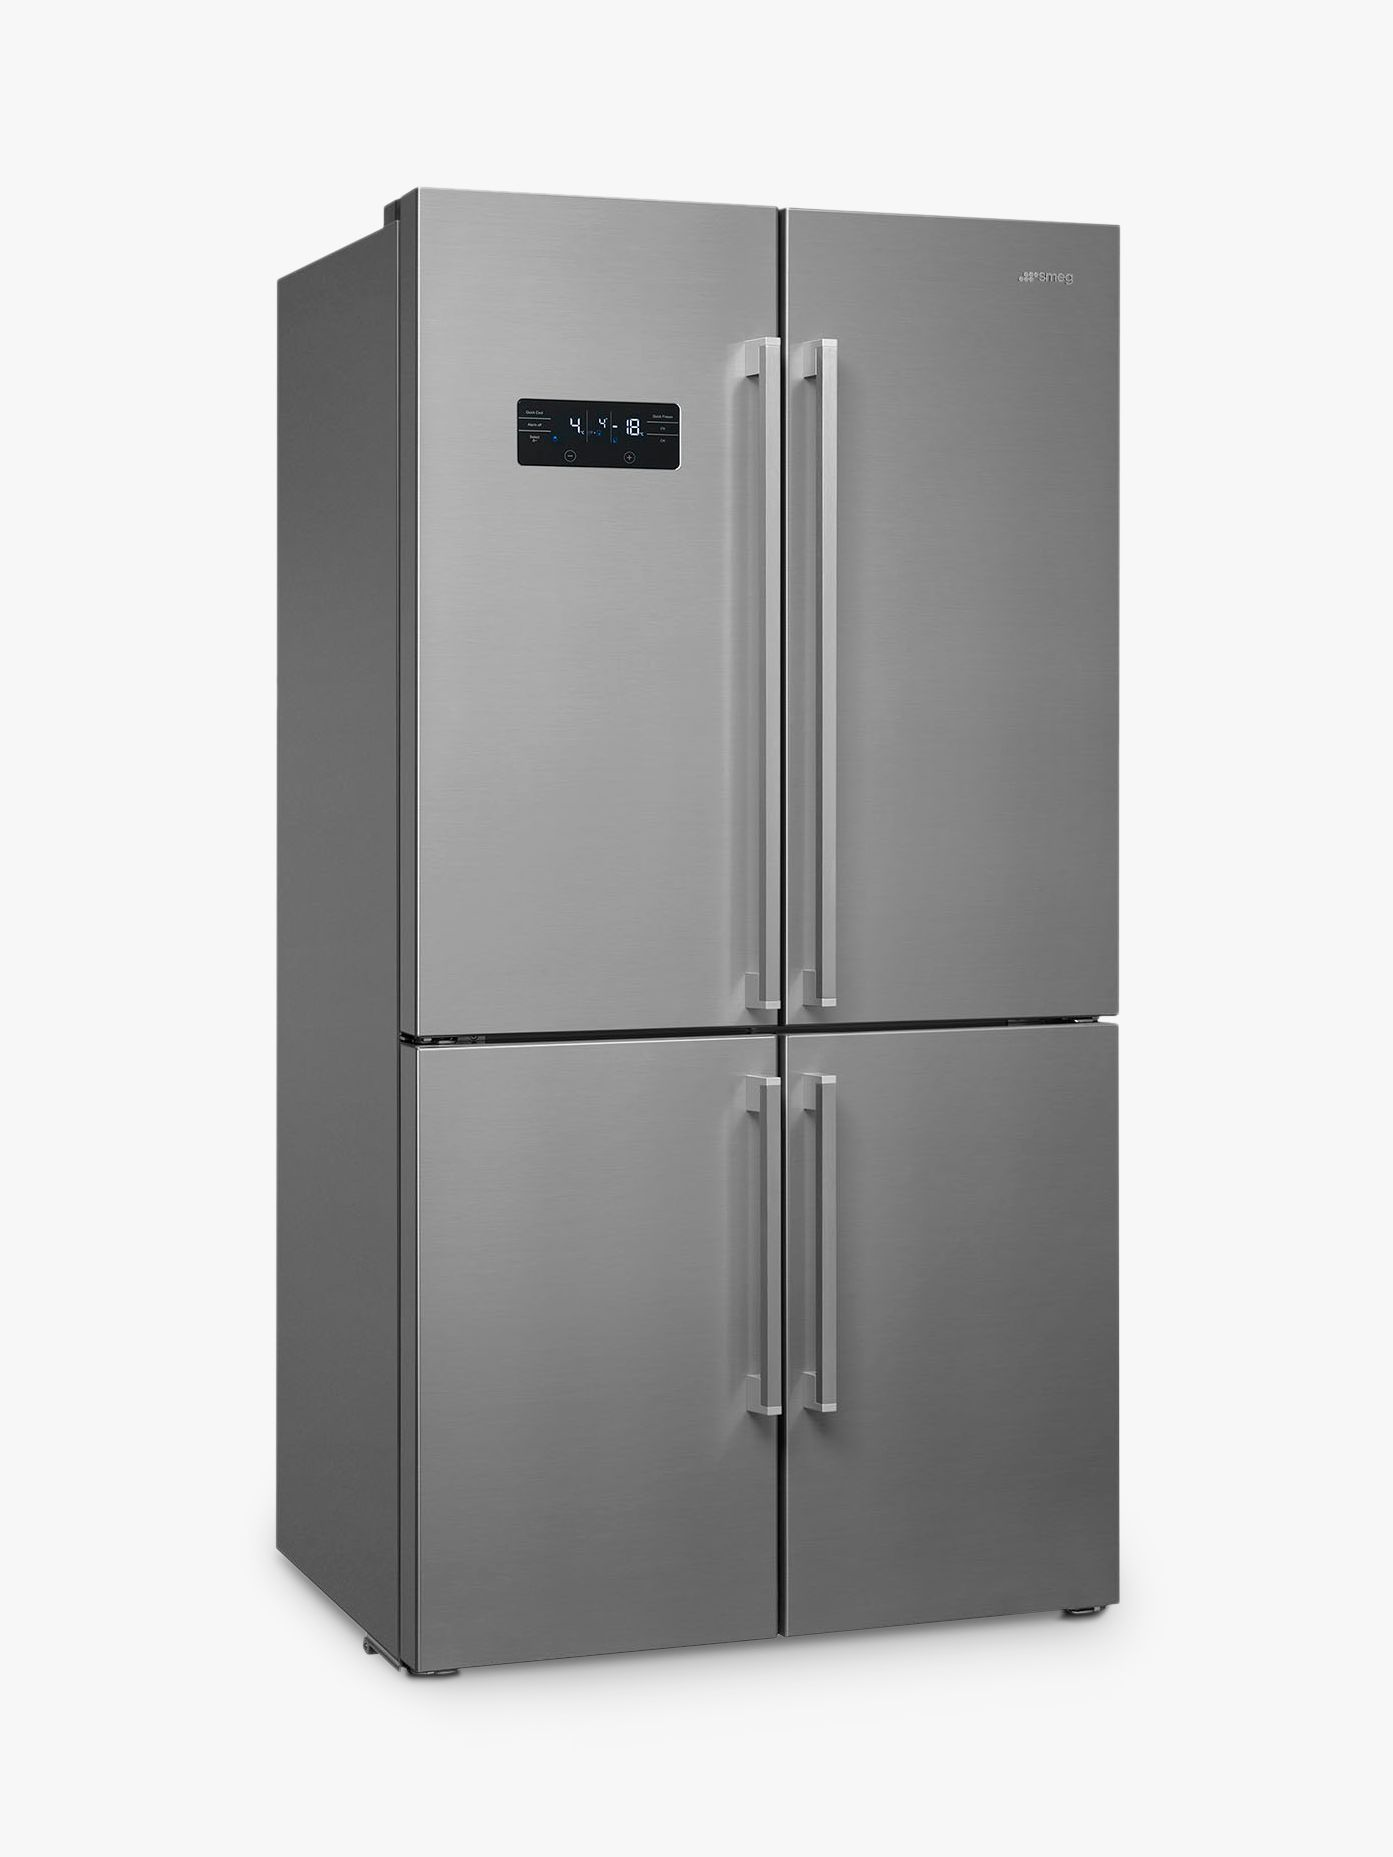 Smeg Smeg FQ60X2PEAI 4-Door American Style Fridge Freezer, A++ Energy Rating, 90.8cm Wide, Stainless Steel